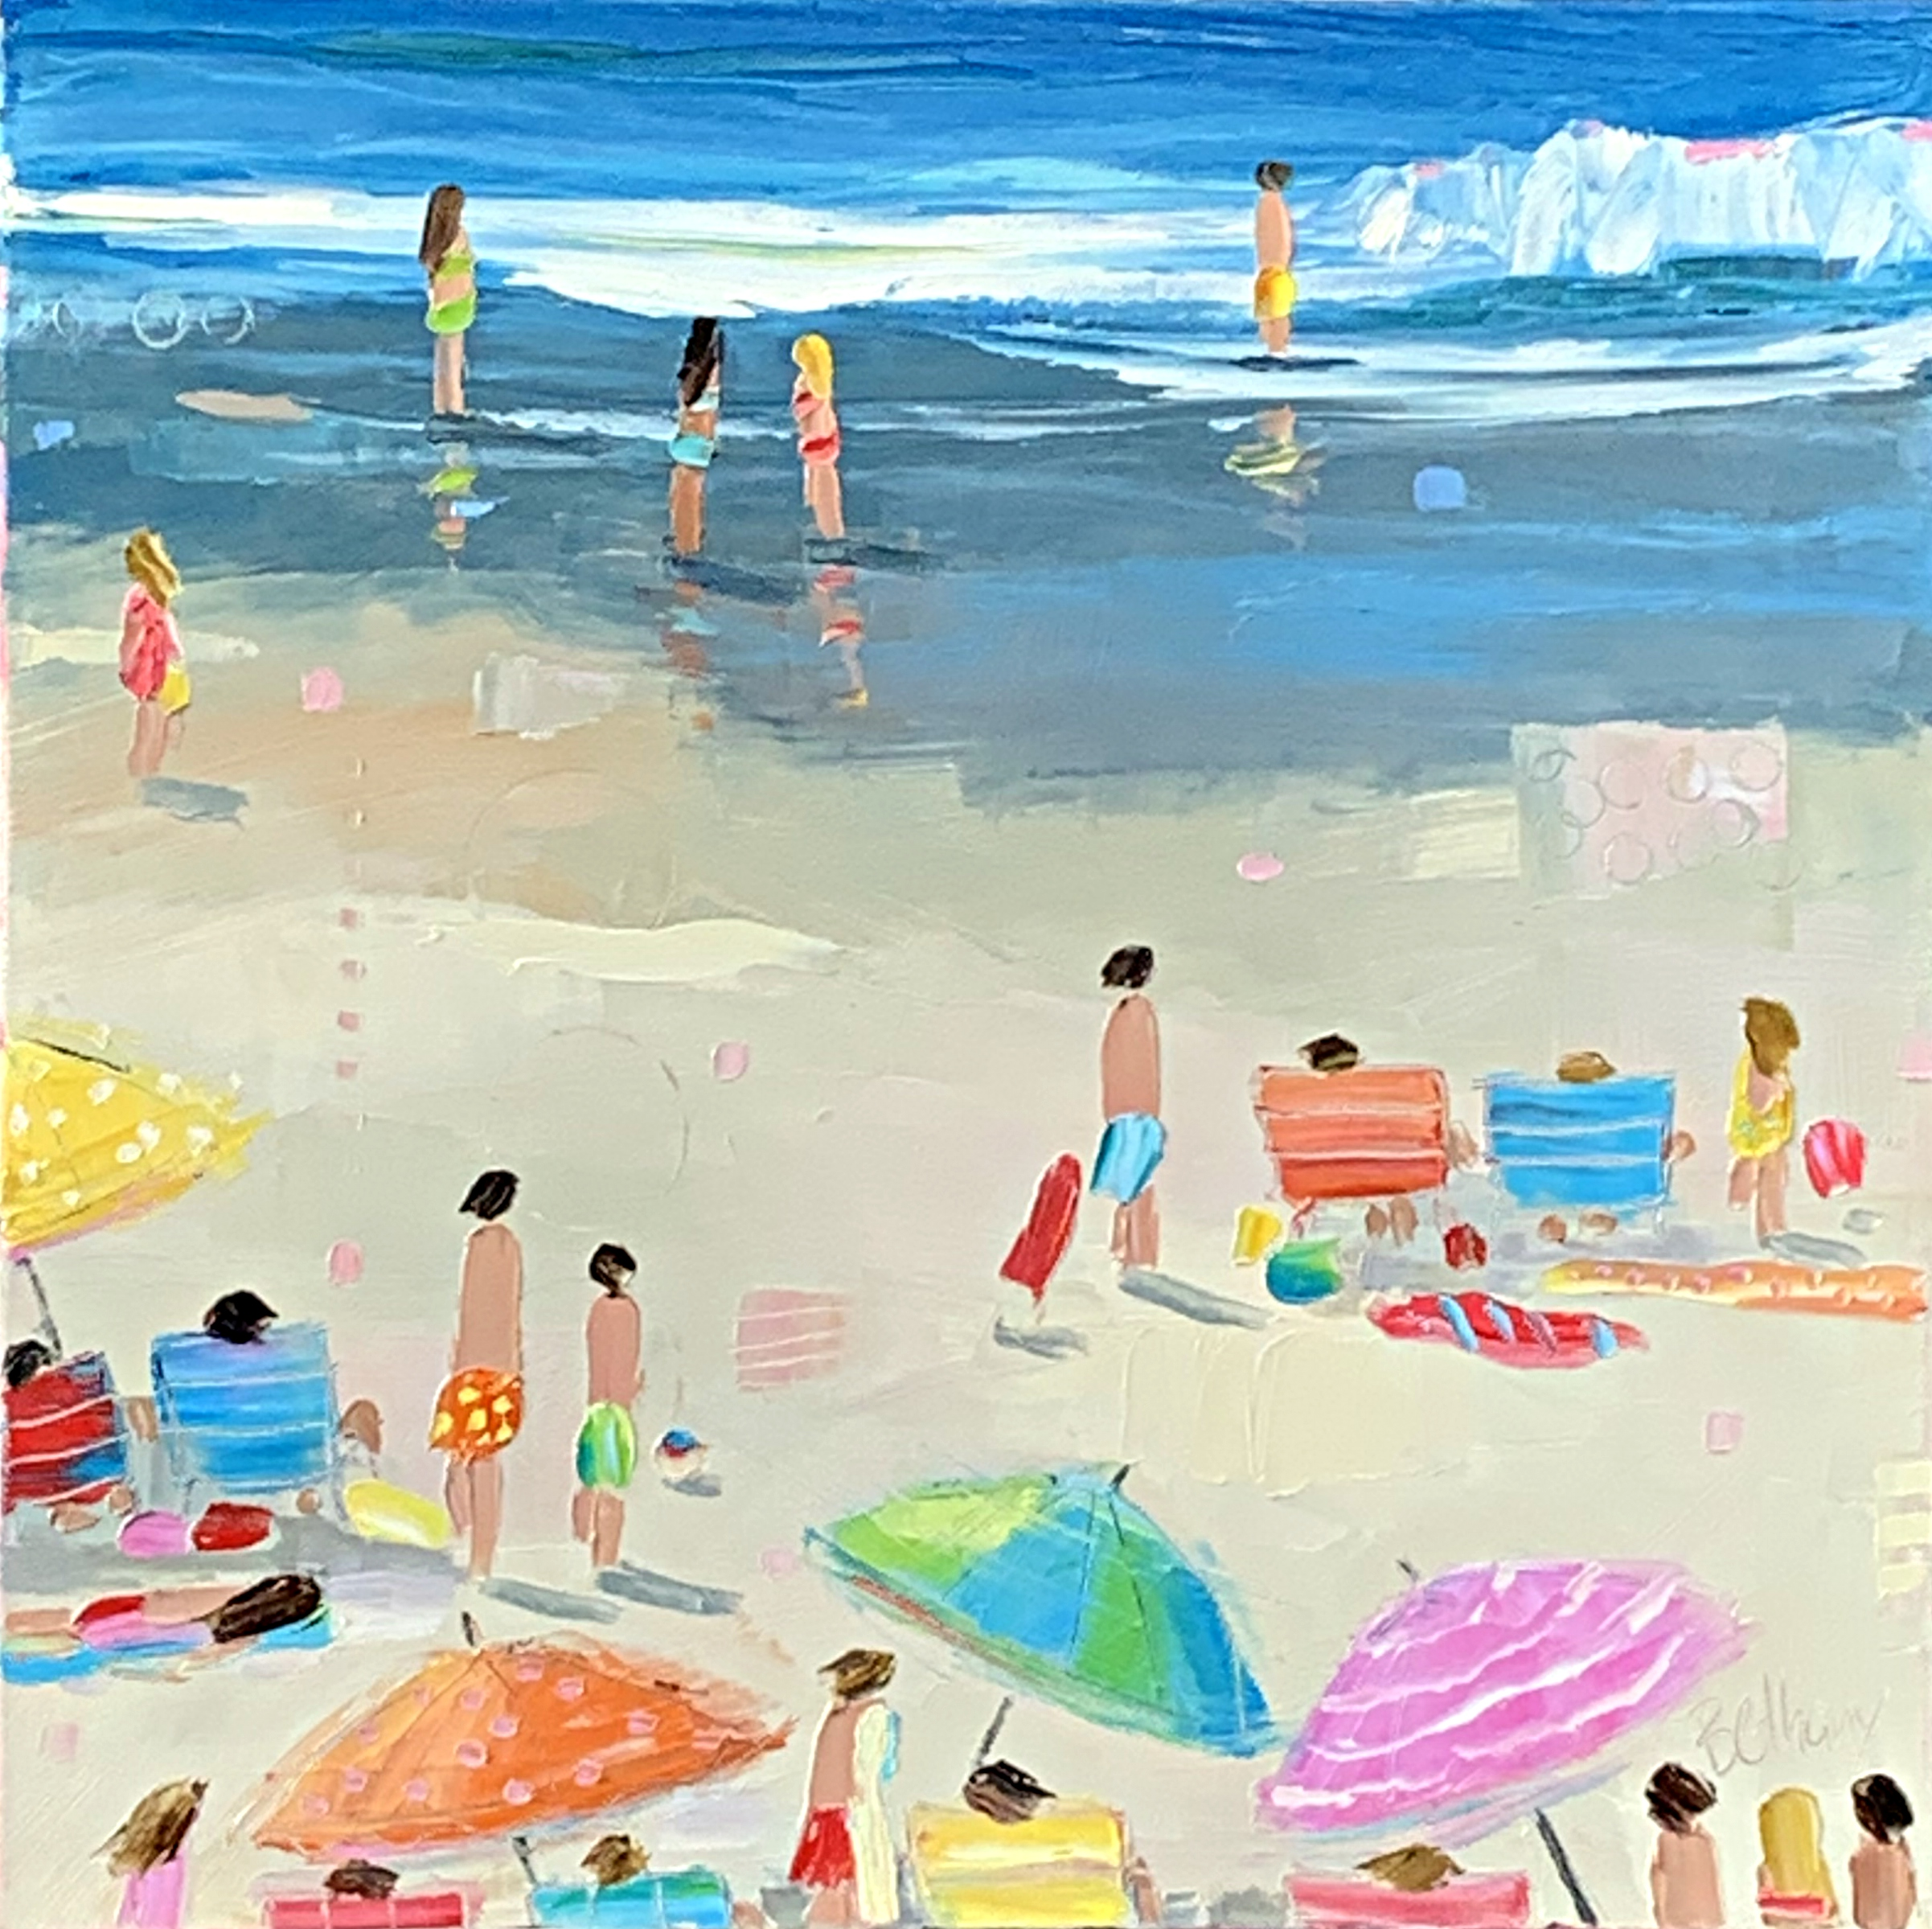 Beach Memories, beach landscape painting by Bethany Harper Williams | Effusion Art Gallery + Glass Studio, Invermere BC